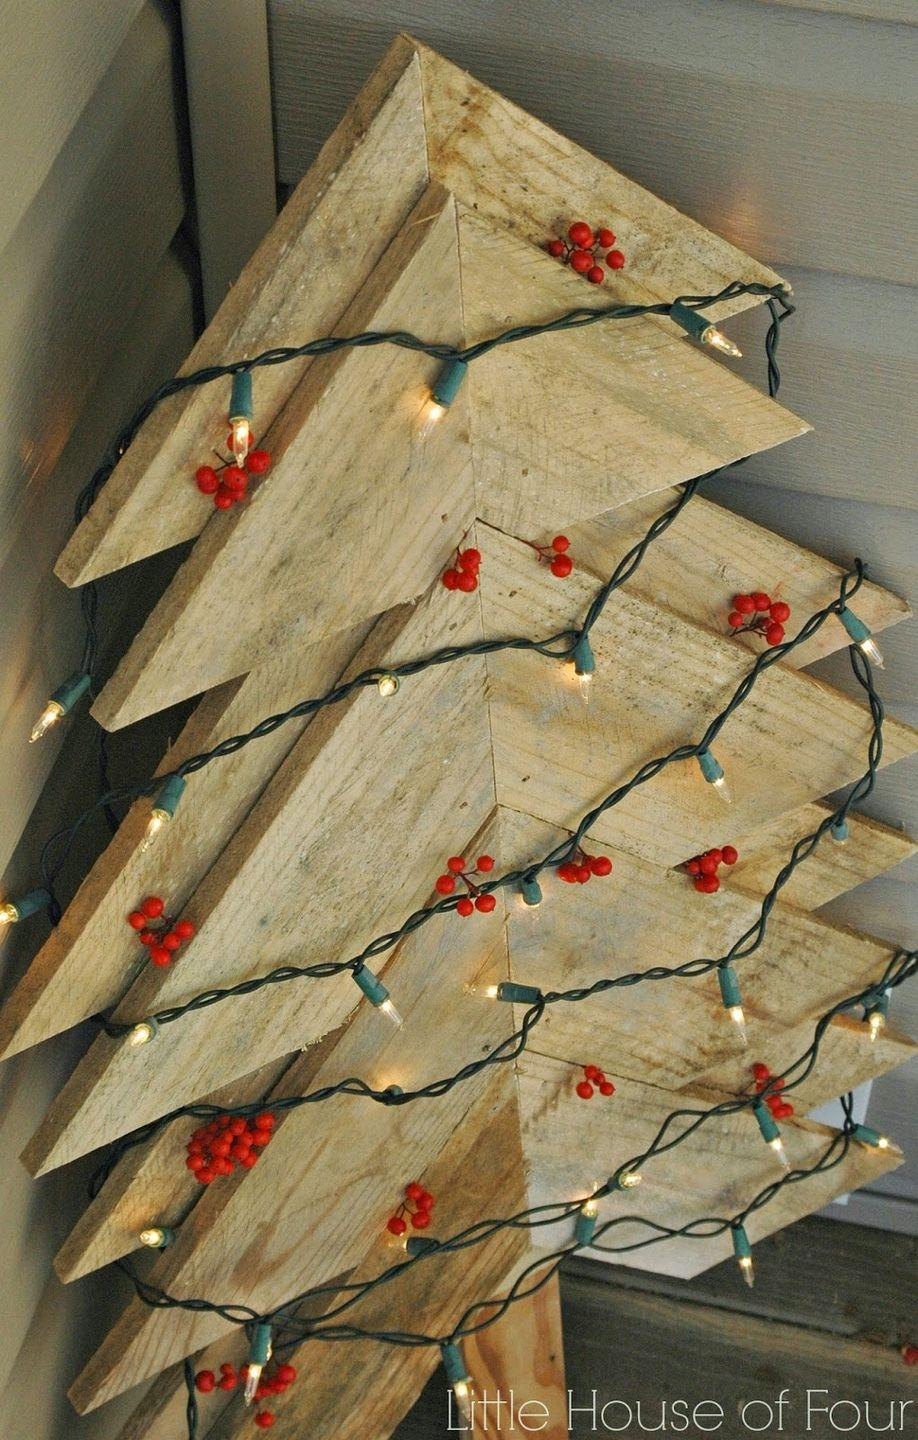 """<p>Created specifically as outdoor decor, this two-layer pallet Christmas tree is made from little else than wood and nails. You'll have it whipped up in no time!</p><p><strong>Get the tutorial at <a href=""""https://www.littlehouseoffour.com/2014/12/large-rustic-pallet-christmas-tree.html"""" rel=""""nofollow noopener"""" target=""""_blank"""" data-ylk=""""slk:Little House of Four"""" class=""""link rapid-noclick-resp"""">Little House of Four</a>.</strong></p><p><a class=""""link rapid-noclick-resp"""" href=""""https://www.amazon.com/Electric-Upholstery-Carpentry-Woodworking-Including/dp/B085XYTSM9/ref=sr_1_1_sspa?tag=syn-yahoo-20&ascsubtag=%5Bartid%7C10050.g.23322271%5Bsrc%7Cyahoo-us"""" rel=""""nofollow noopener"""" target=""""_blank"""" data-ylk=""""slk:SHOP NAIL GUNS"""">SHOP NAIL GUNS</a><br></p>"""